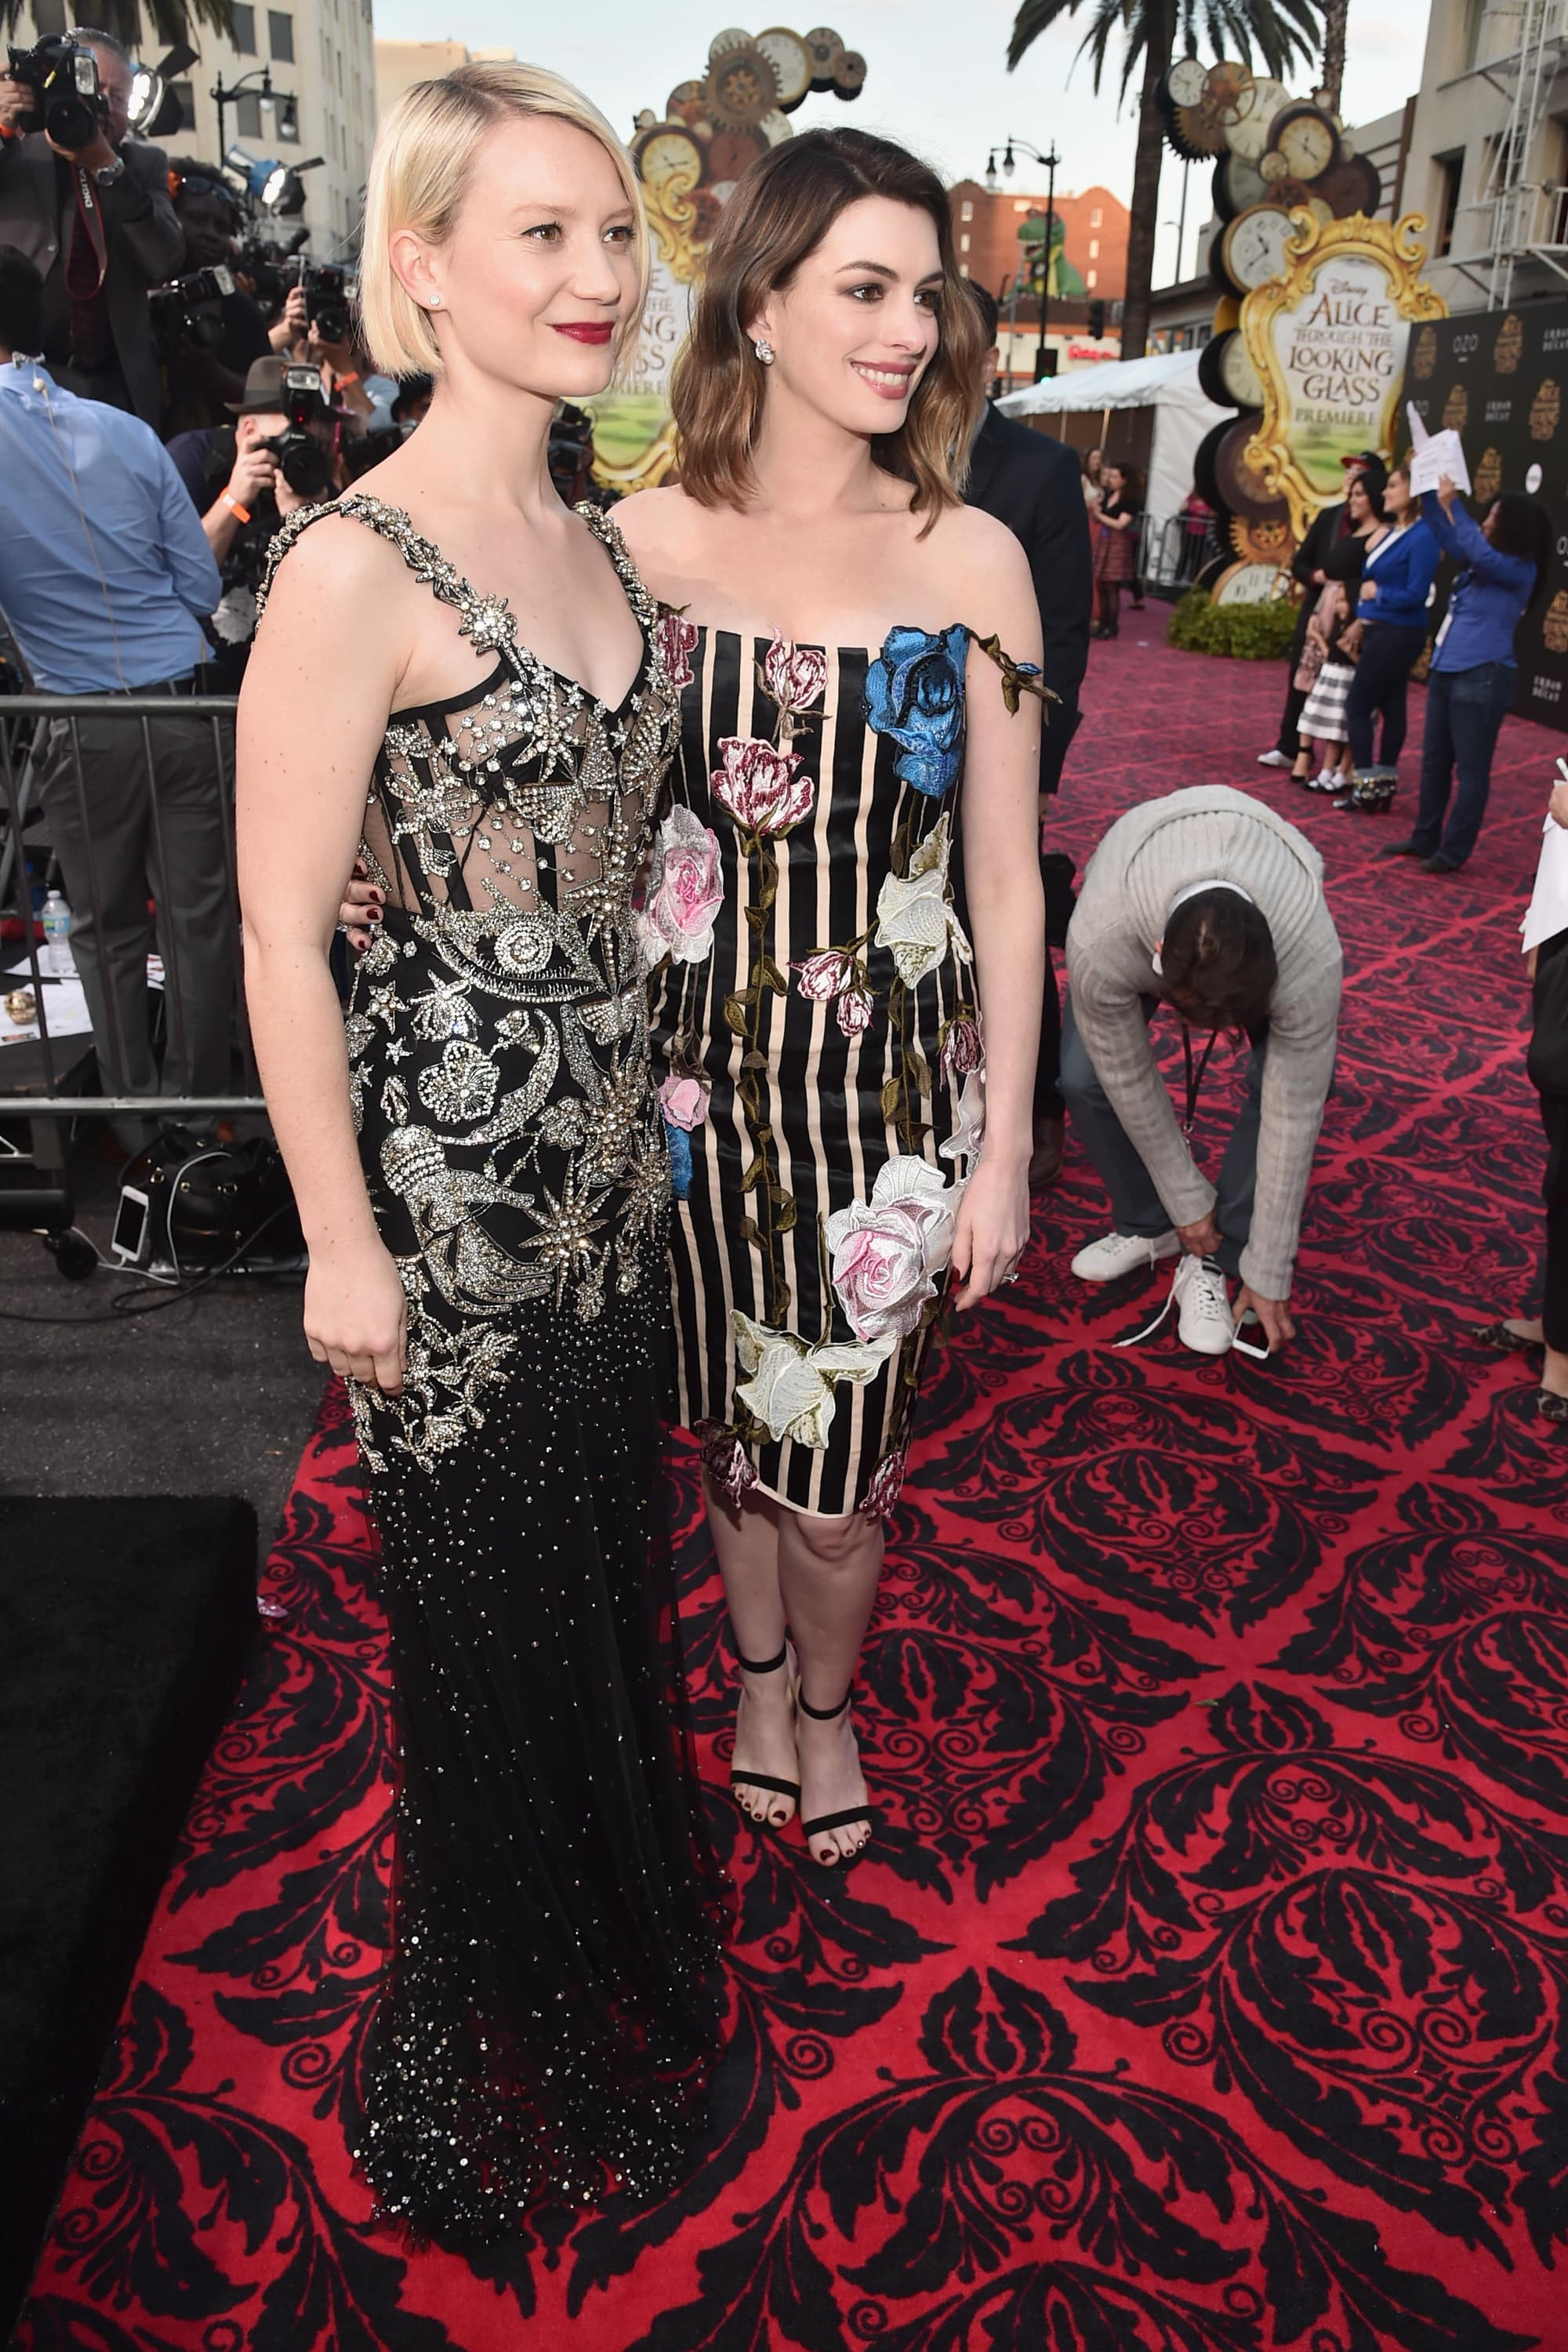 HOLLYWOOD, CA - MAY 23: Actresses Mia Wasikowska (L) and Anne Hathaway attend Disney's 'Alice Through the Looking Glass' premiere with the cast of the film, which included Johnny Depp, Anne Hathaway, Mia Wasikowska and Sacha Baron Cohen at the El Capitan Theatre on May 23, 2016 in Hollywood, California. (Photo by Alberto E. Rodriguez/Getty Images for Disney) *** Local Caption *** Mia Wasikowska; Anne Hathaway